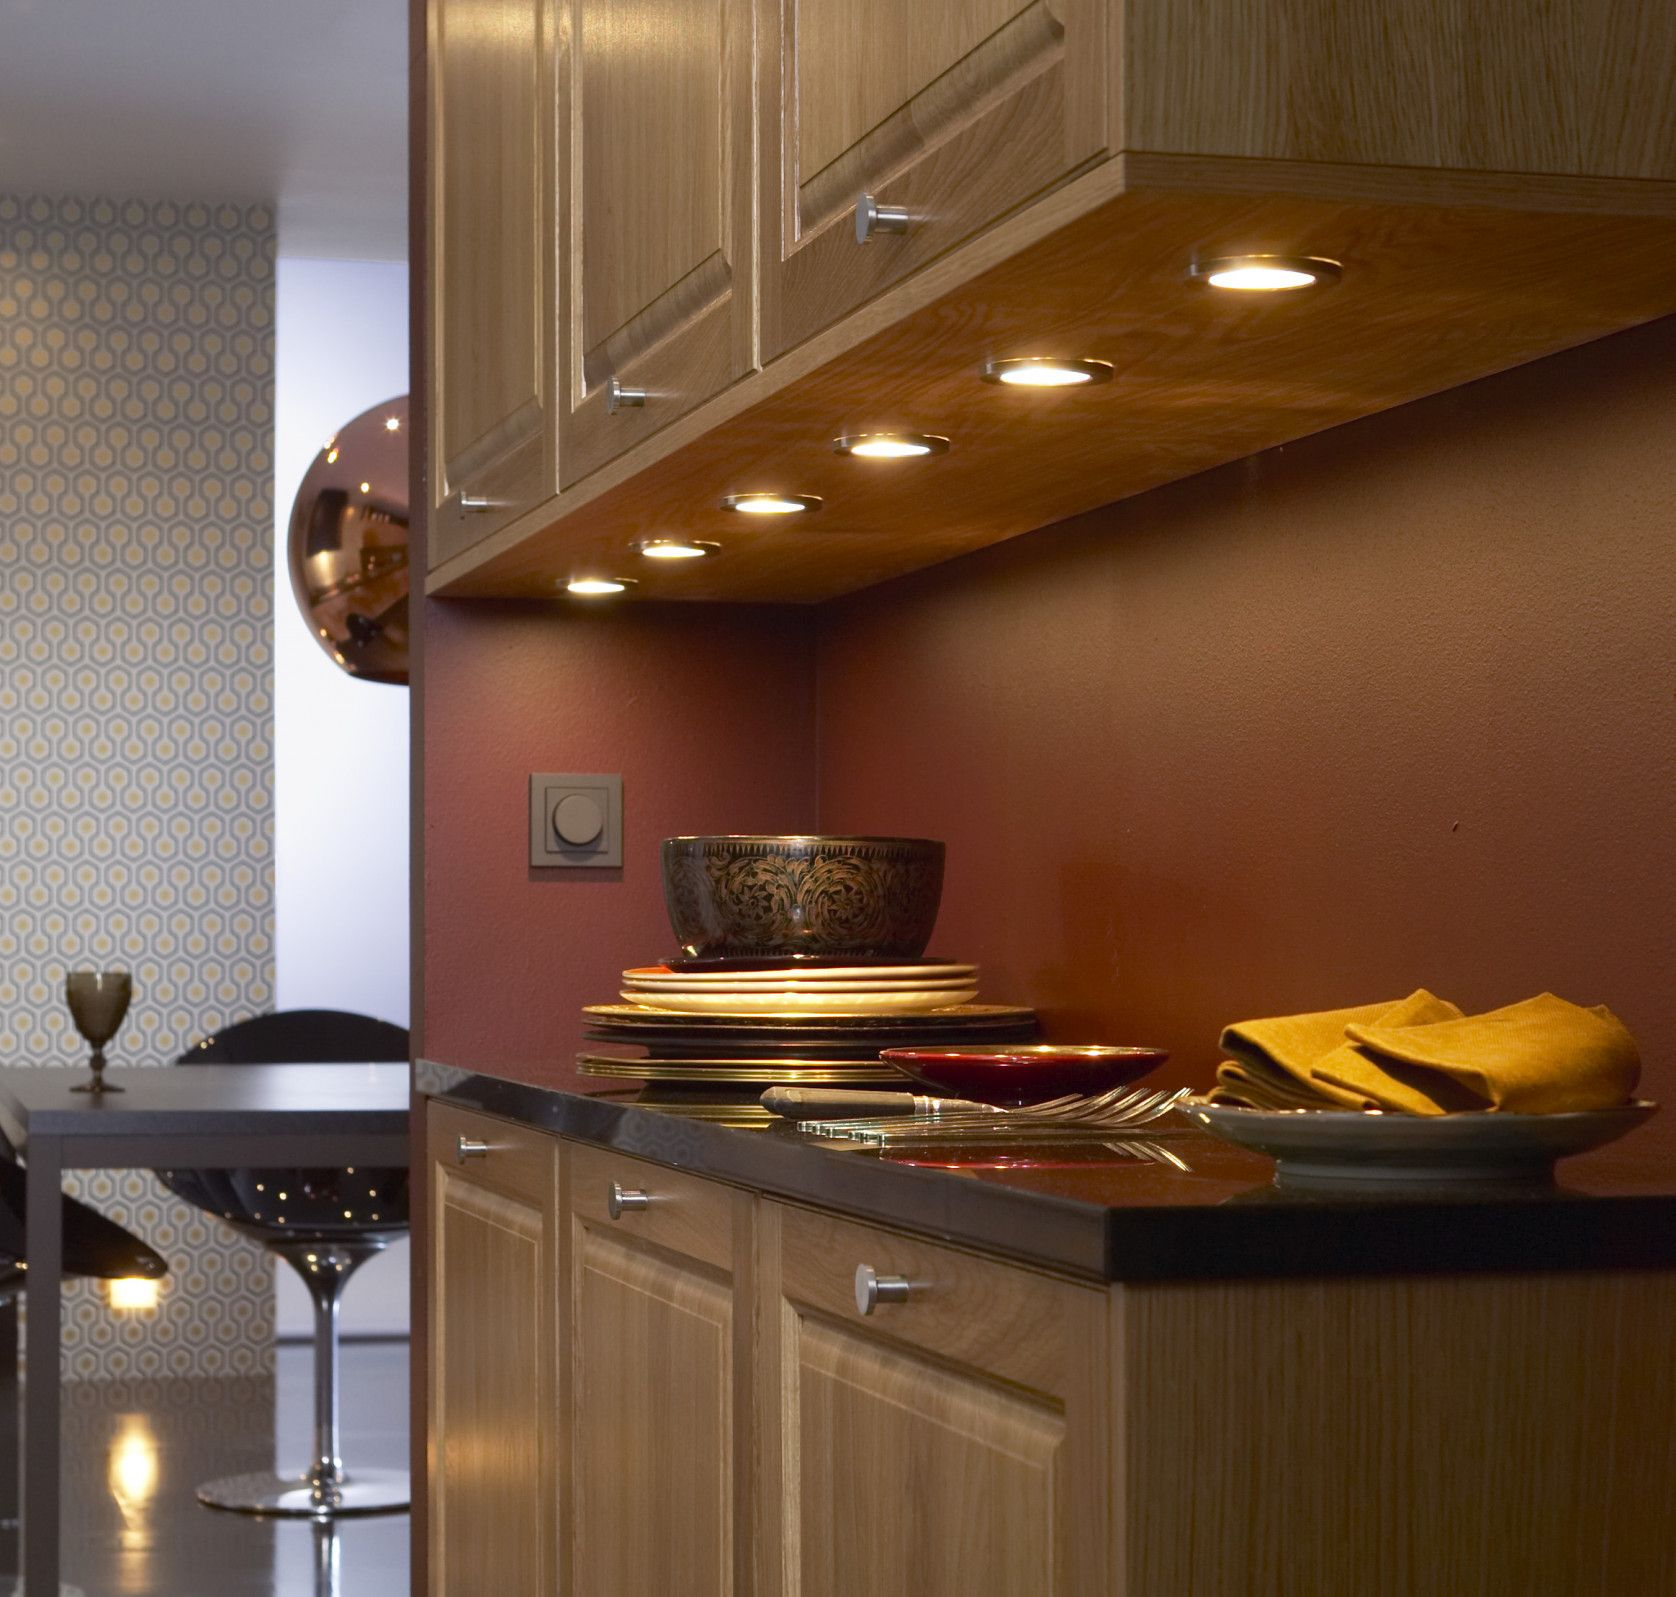 under cabinet lighting options kitchen. 2019 Under Cabinet Kitchen Lighting Options - Small Island Ideas With Seating Check More At N